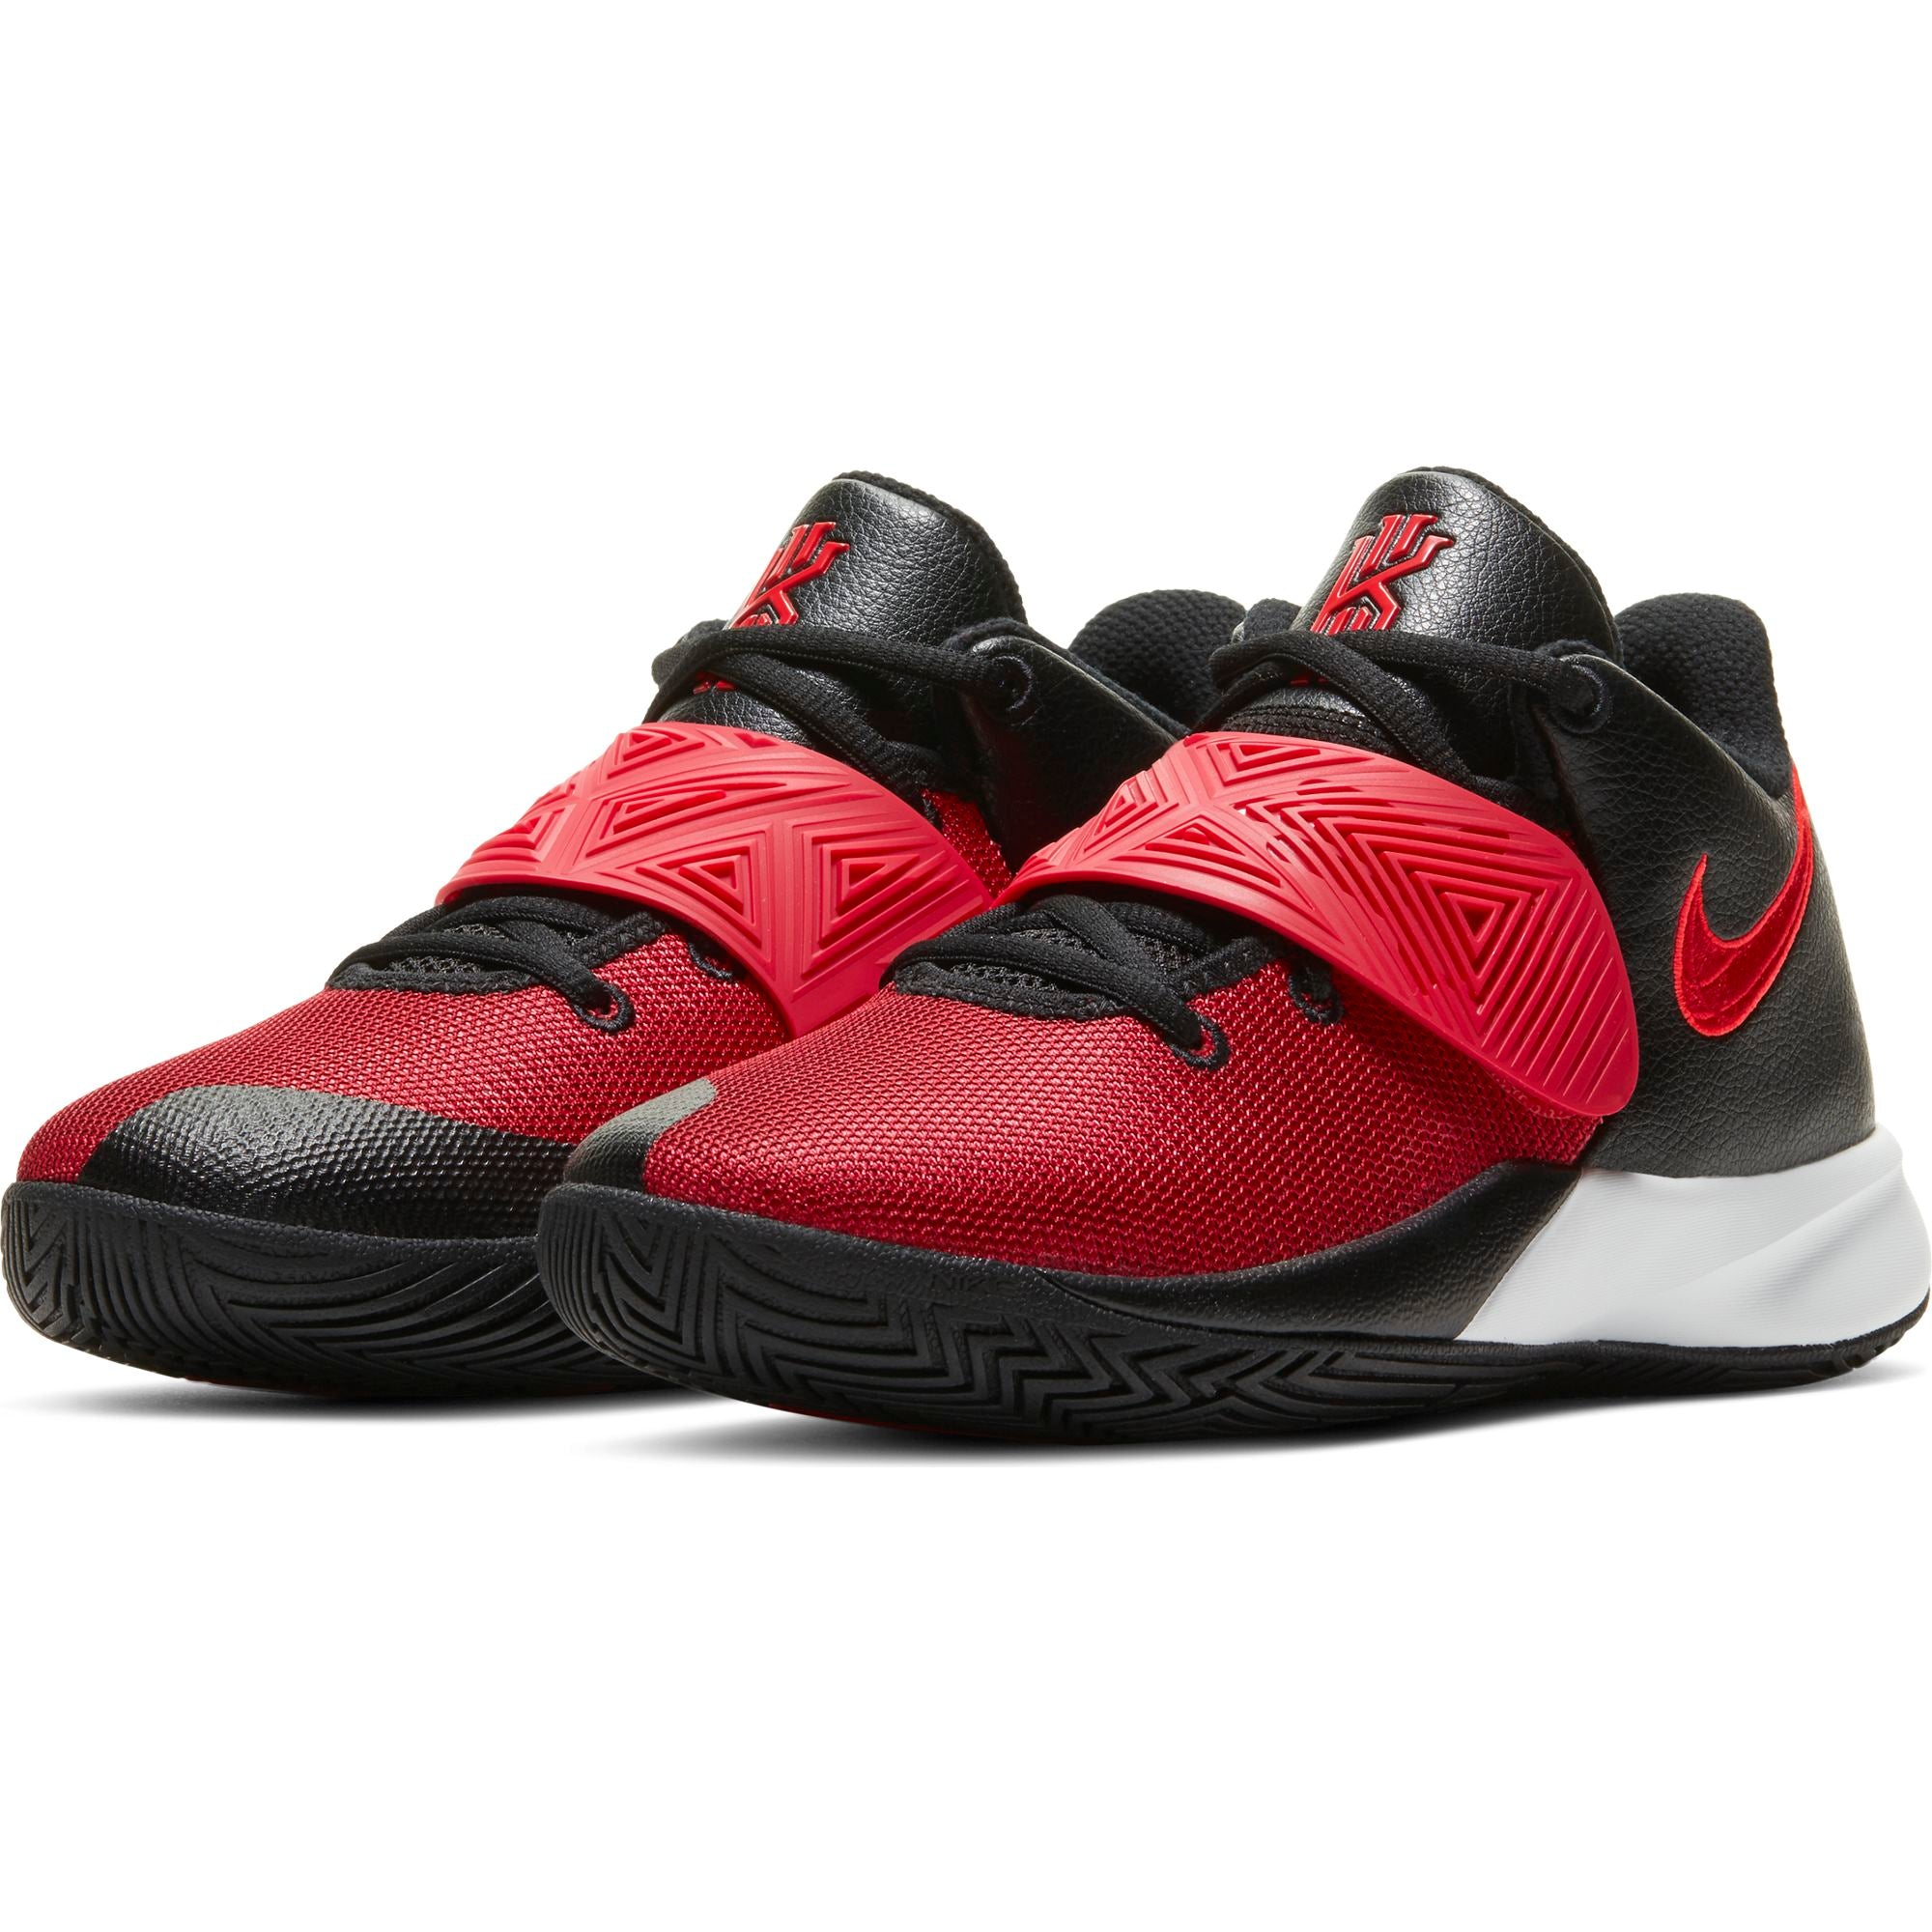 Nike Kids Kyrie Flytrap 3 Basketball Boot/Shoe - Black/University Red/Bright Crimson